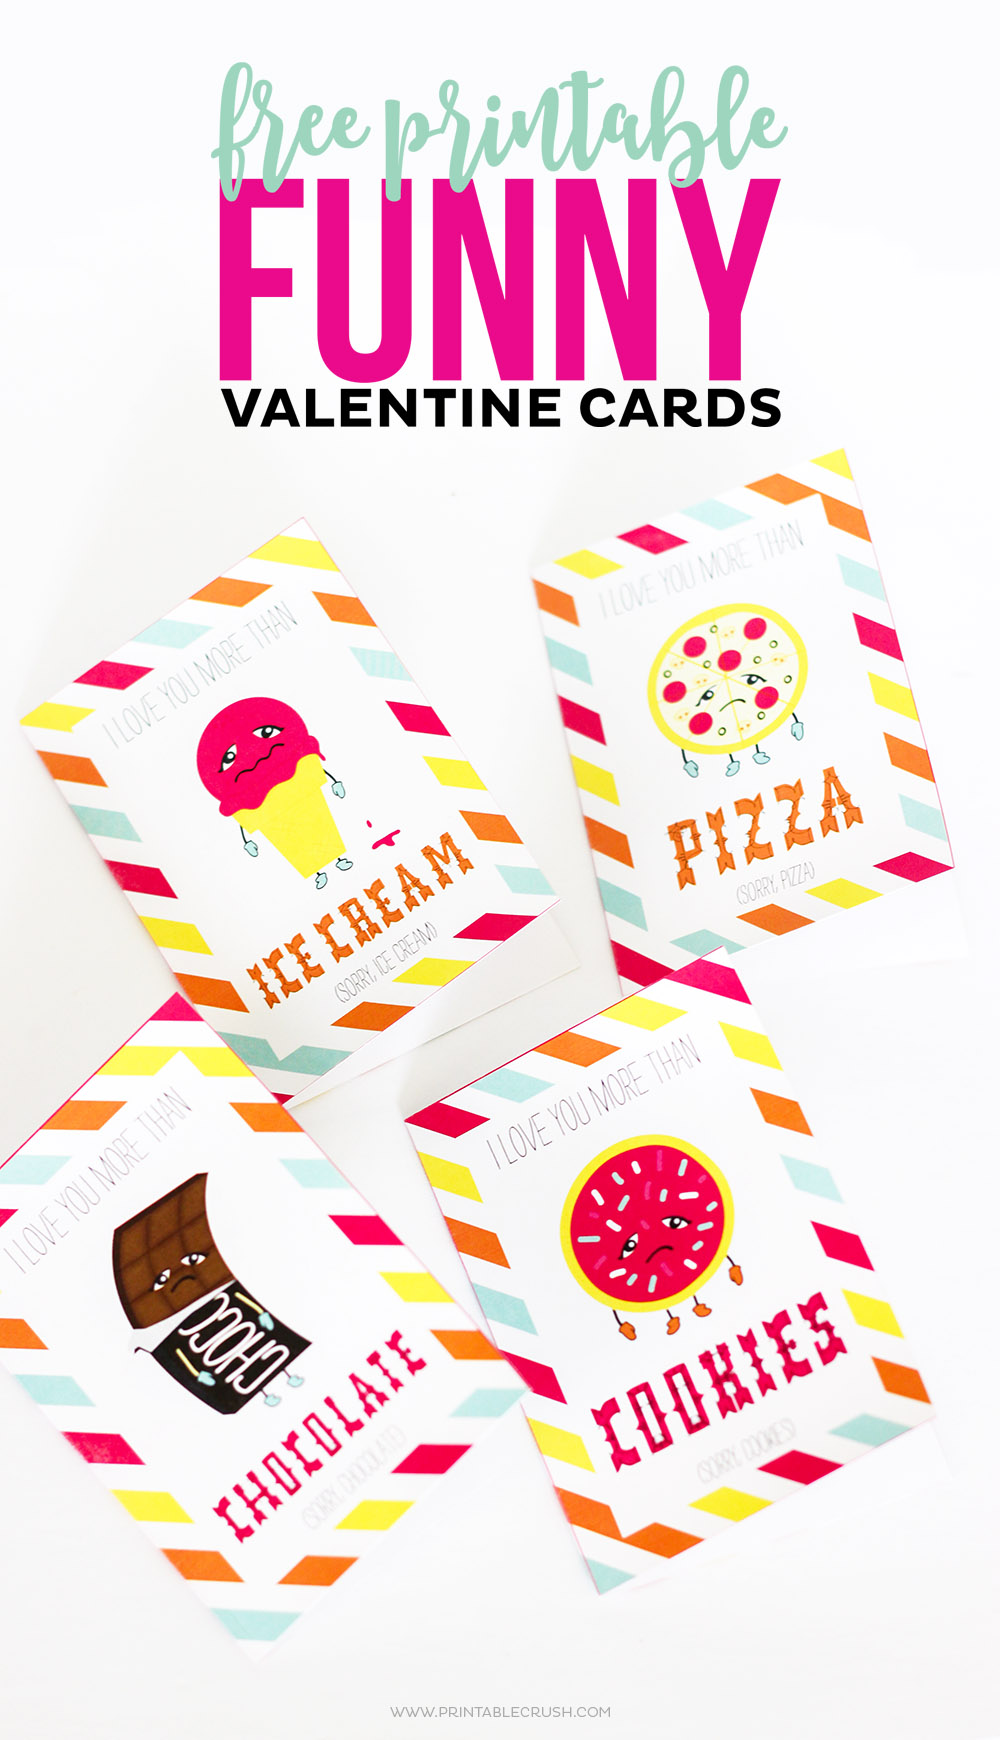 Show Someone How Much You REALLY Care With These FREE Printable Funny Valentine Cards Includes Four Designs Illustrations Of Your Favorite Foods